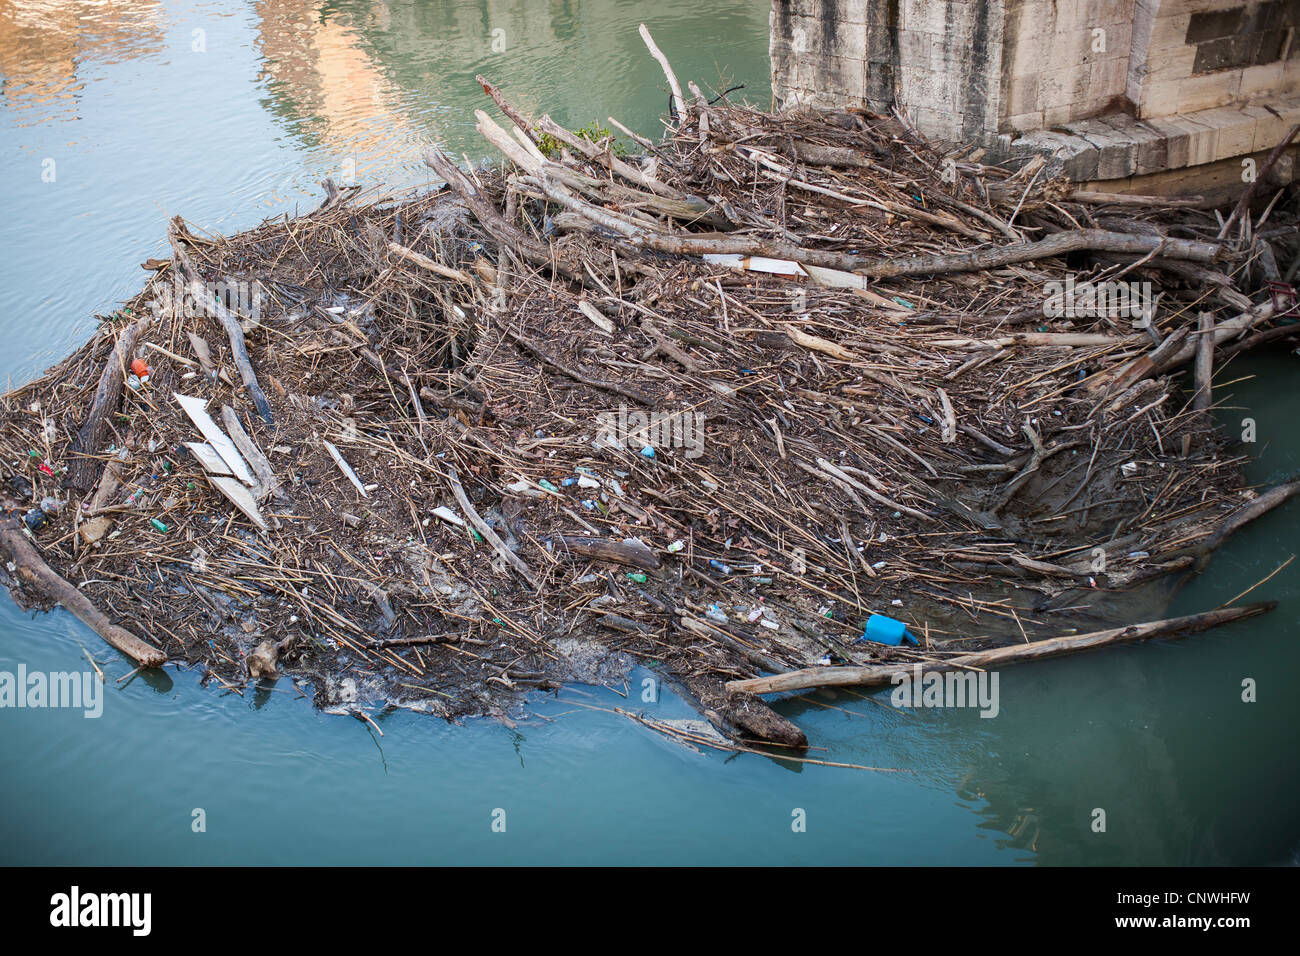 Debris floating on the river Tiber, Rome, Italy, Europe - Stock Image